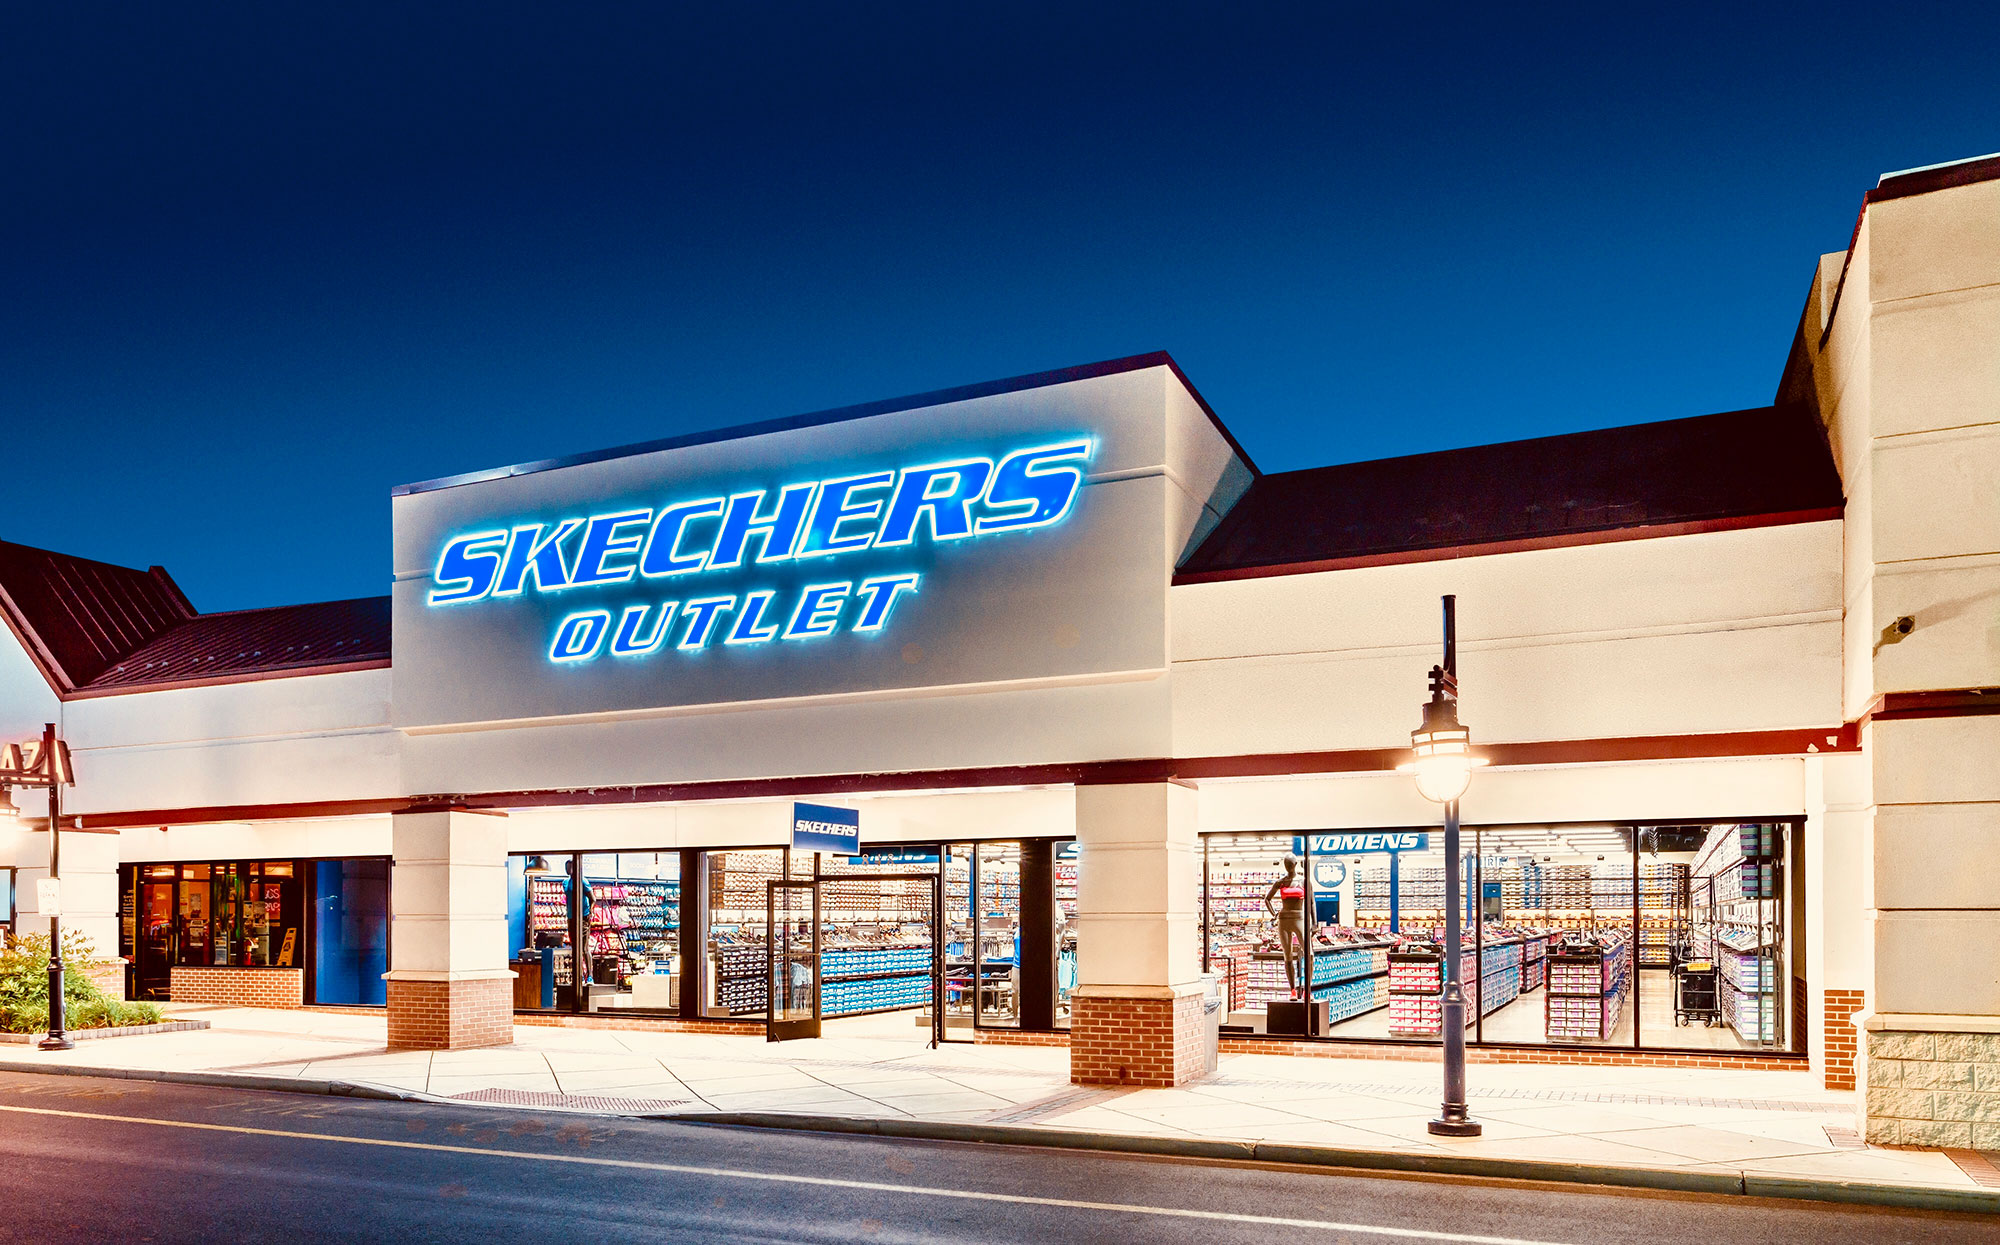 Skechers Shoe Outlet on W. Irving Park